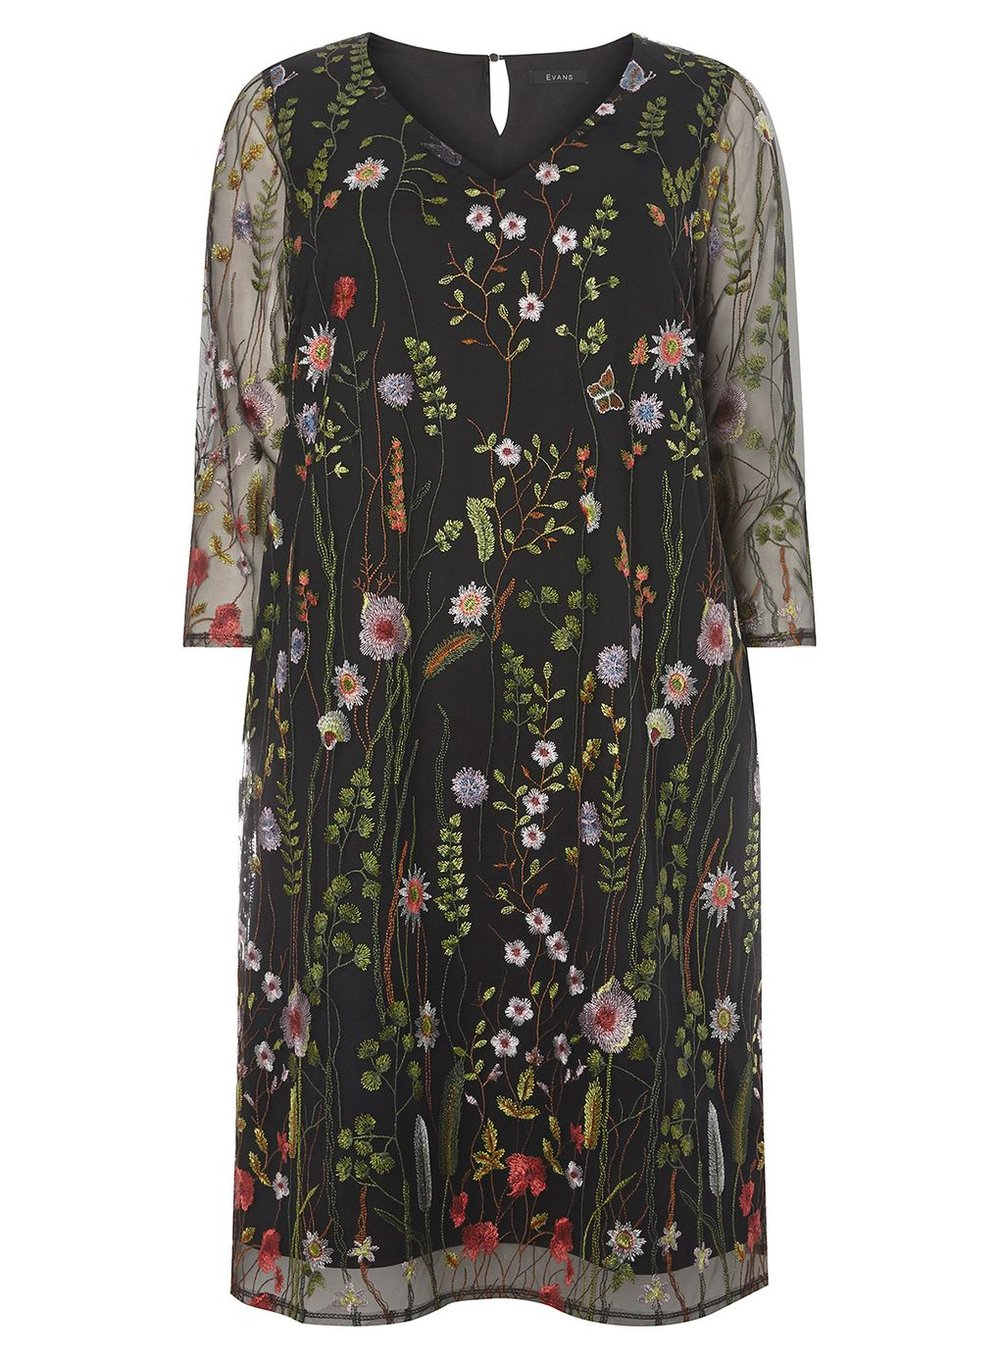 black-floral-dress-evans-over-60s.jpg